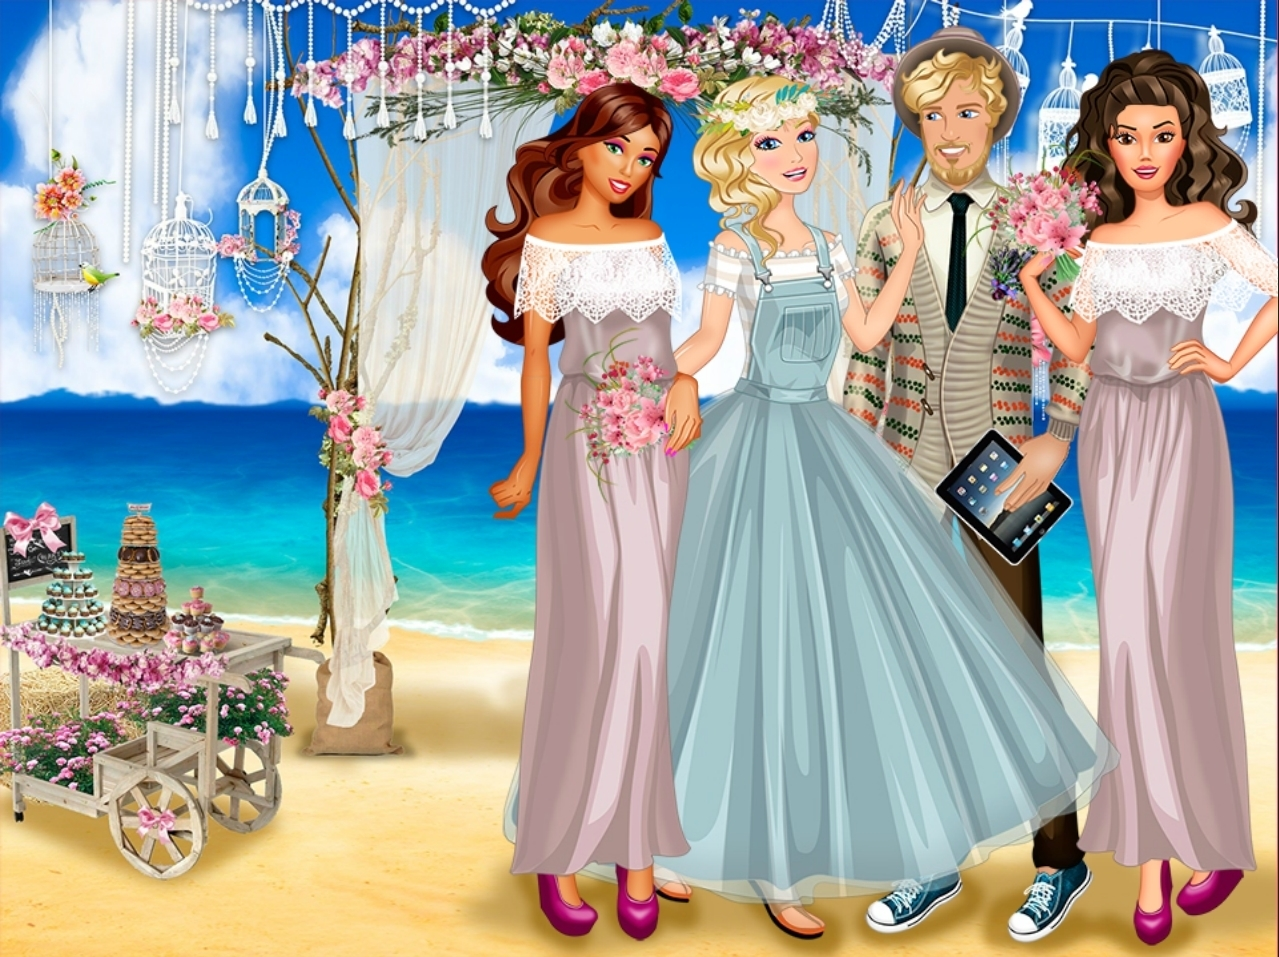 Magnificent Wedding Dress Up Games Sketch - All Wedding Dresses ...